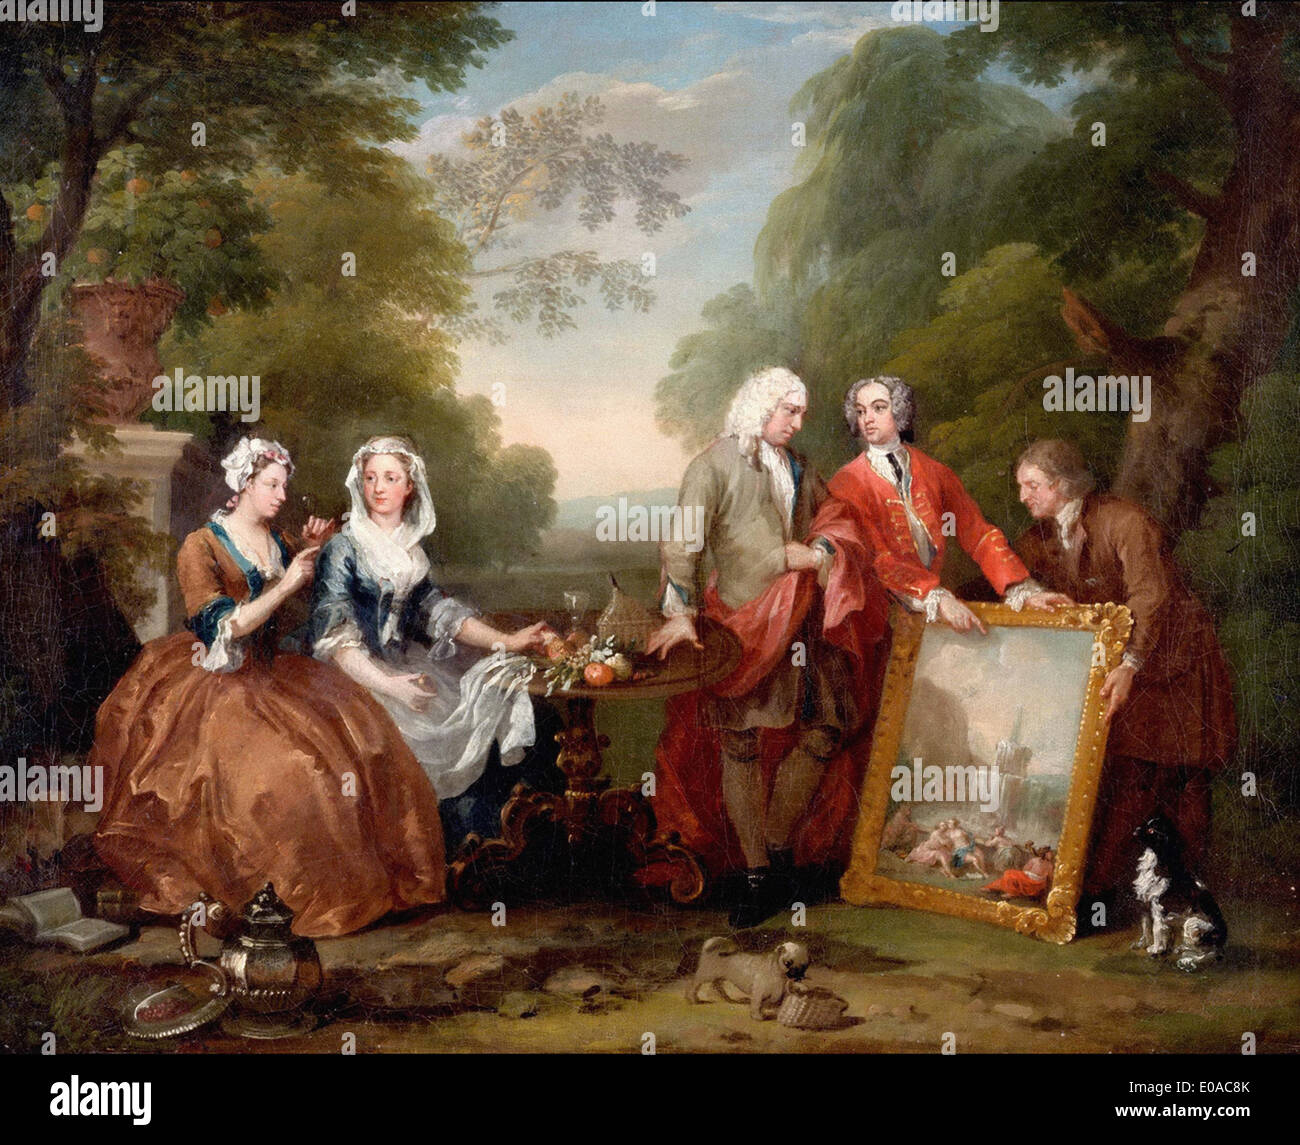 William Hogarth Conversation Piece (Portrait of Sir Andrew Fountaine with Other Men and Women) Stock Photo